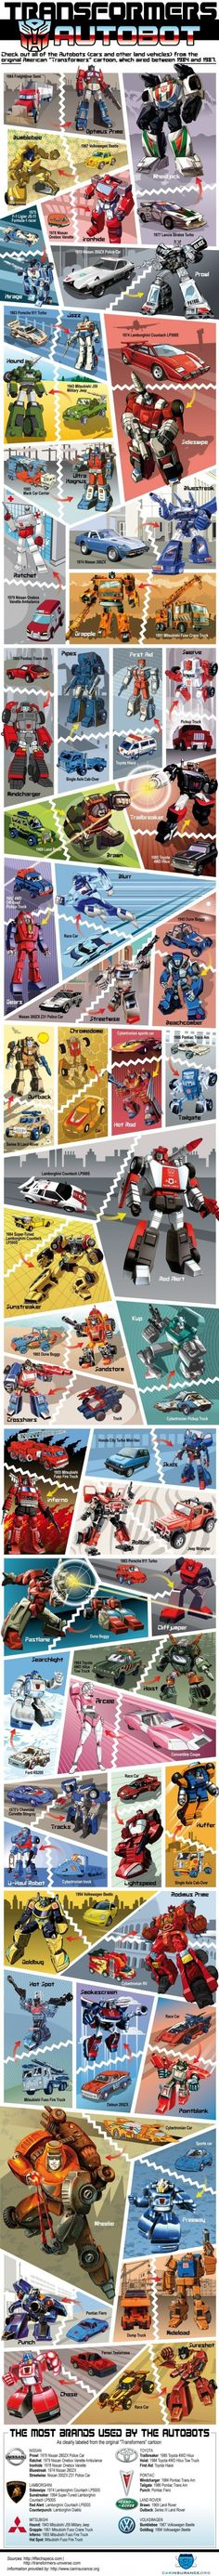 Transformers over time